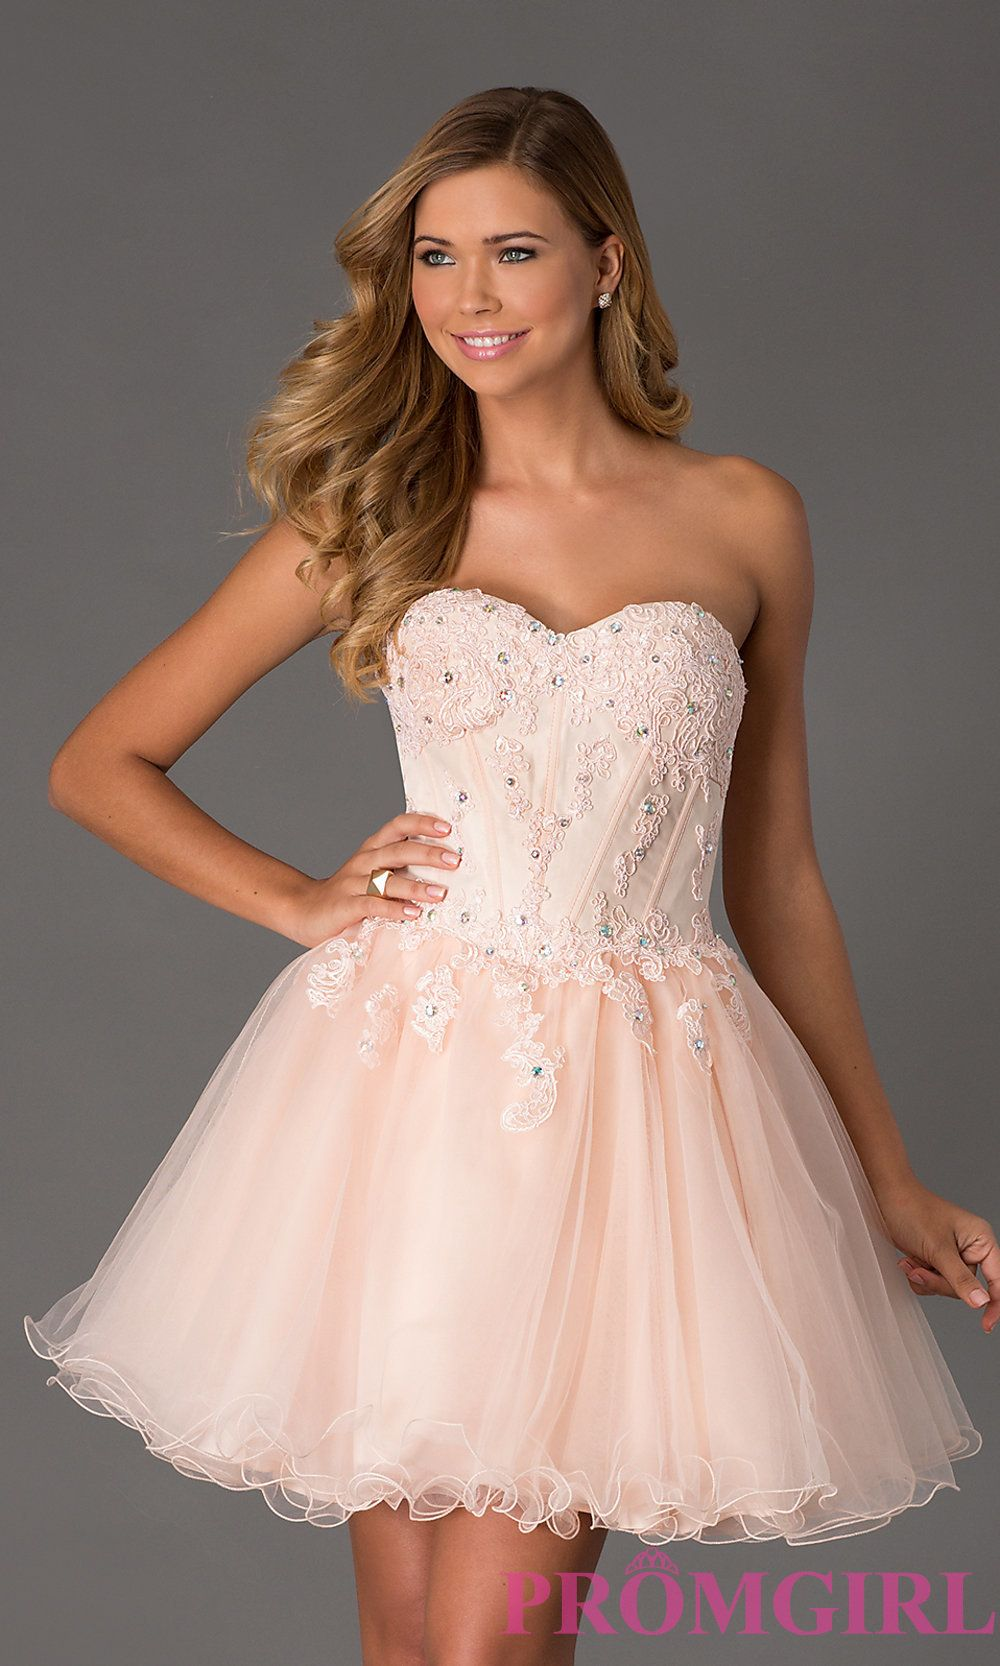 Strapless corset style prom dress shopping